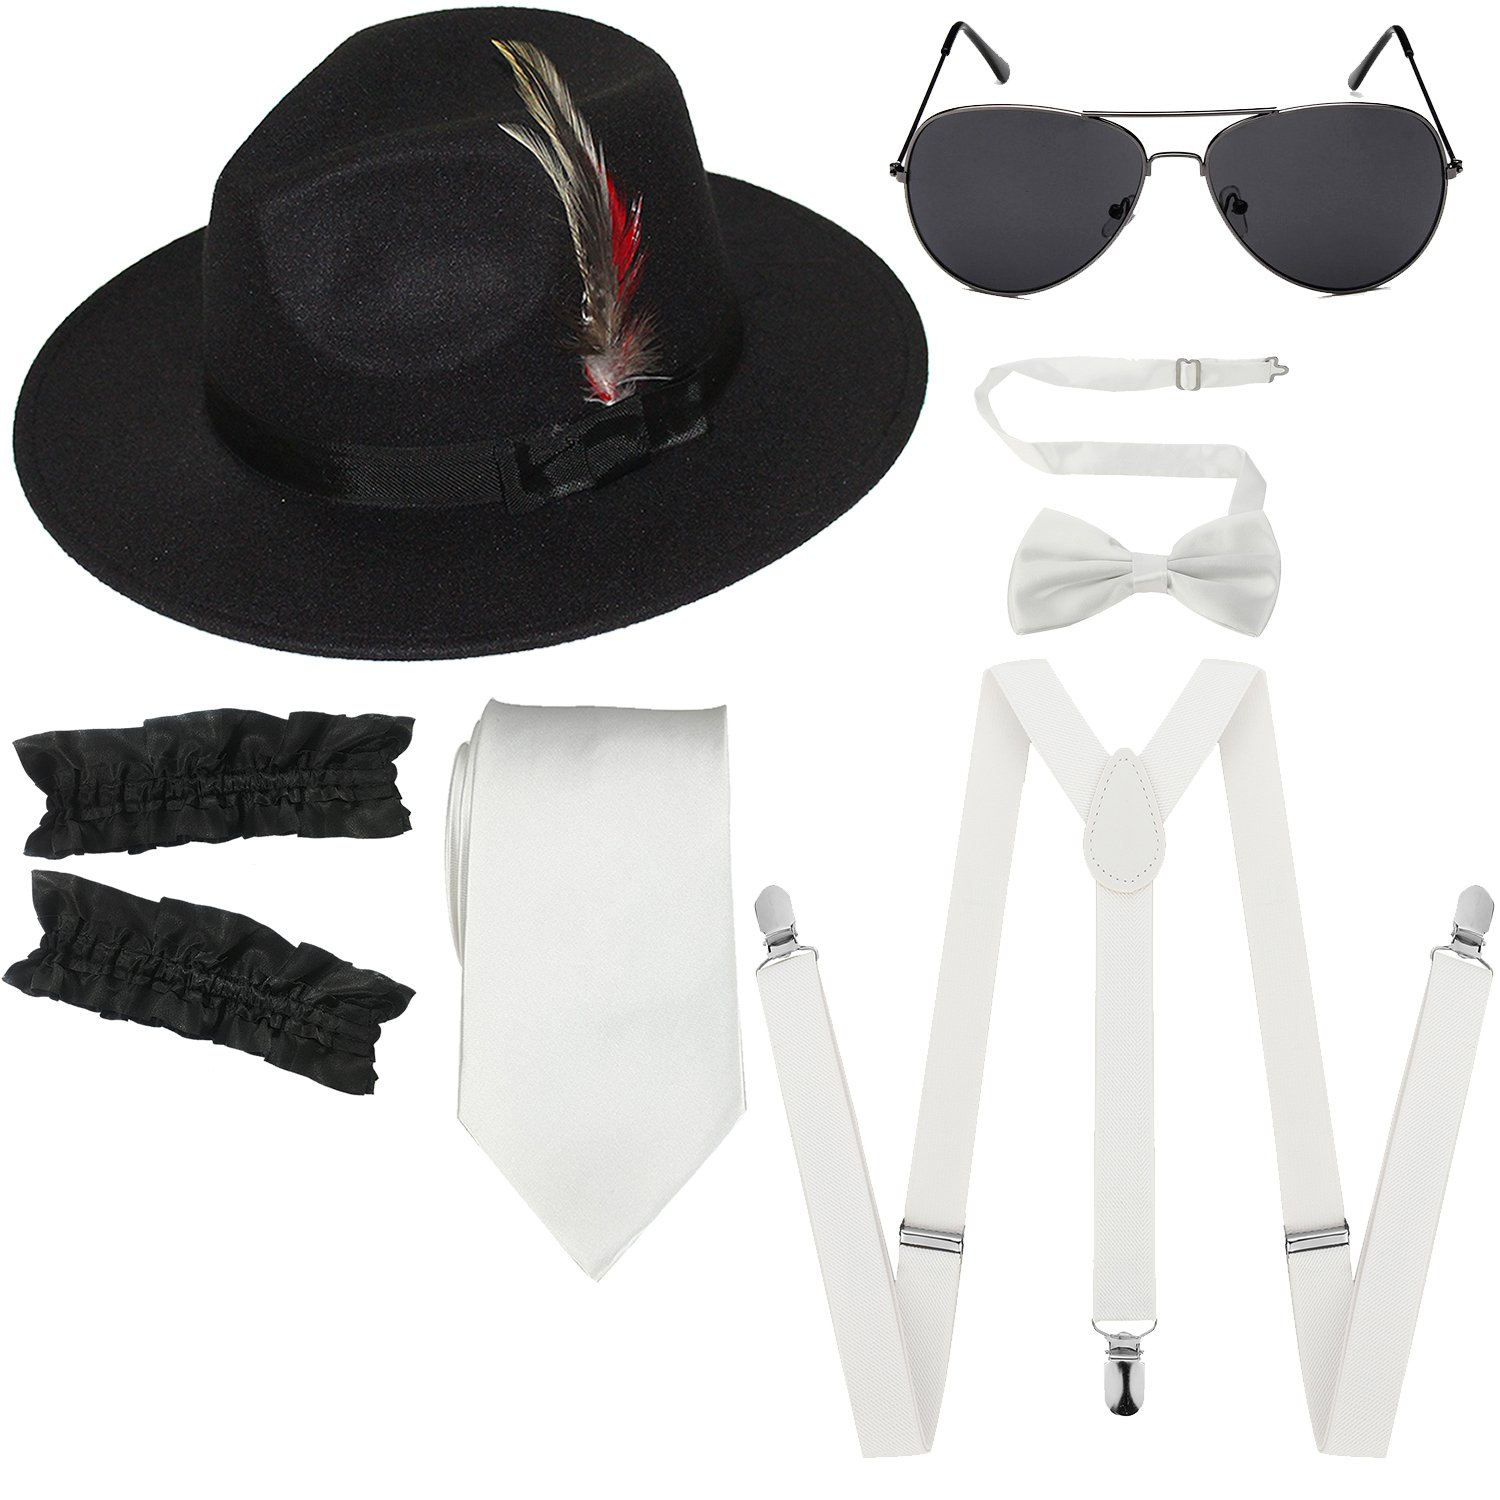 1920s Mens Manhattan Trilby Fedora Hat, Garters Armbands,Y-Back Suspenders & Pre Tied Bowtie, Gangster Sunglass Gangster Sunglass (Burgundy)